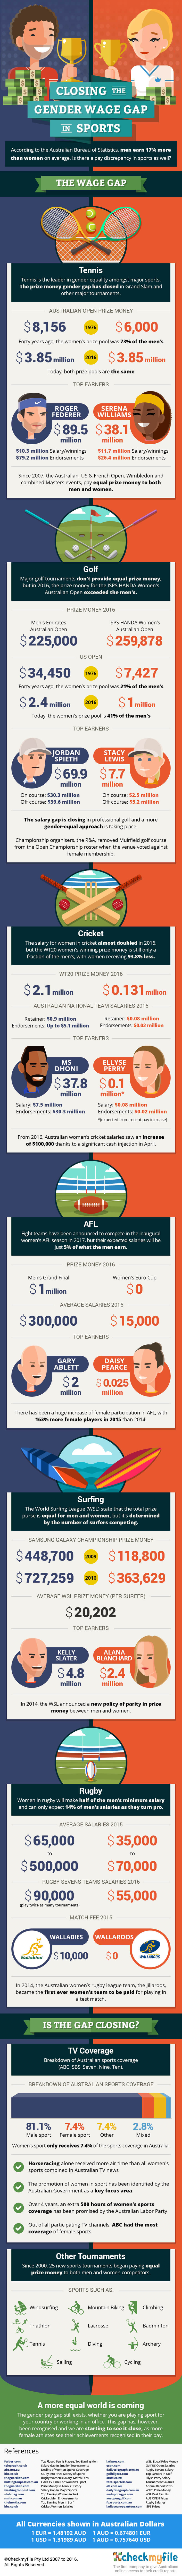 Closing the Gender Wage Gap in Sports [Infographic]